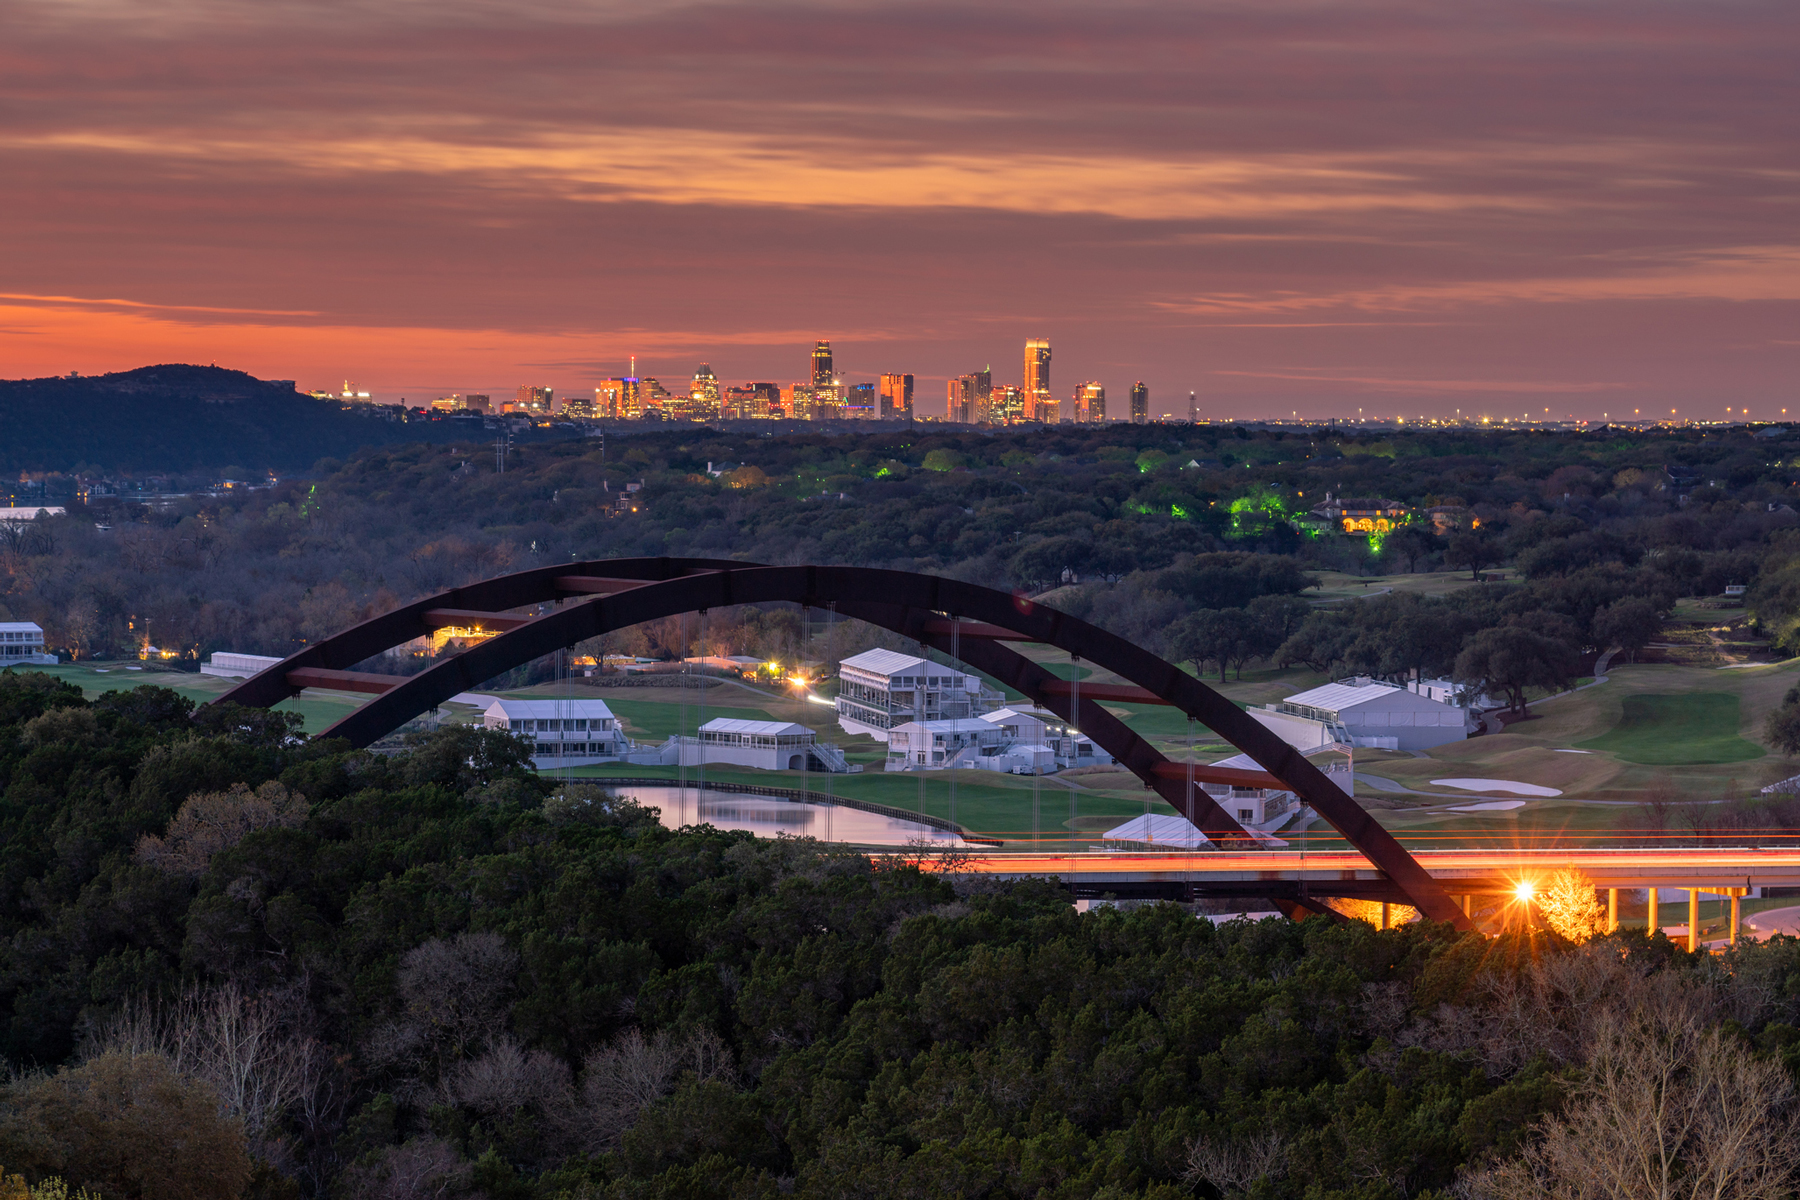 Early Sunrise View of the Light up Austin Skyline With the 360 Bridge in the Foreground